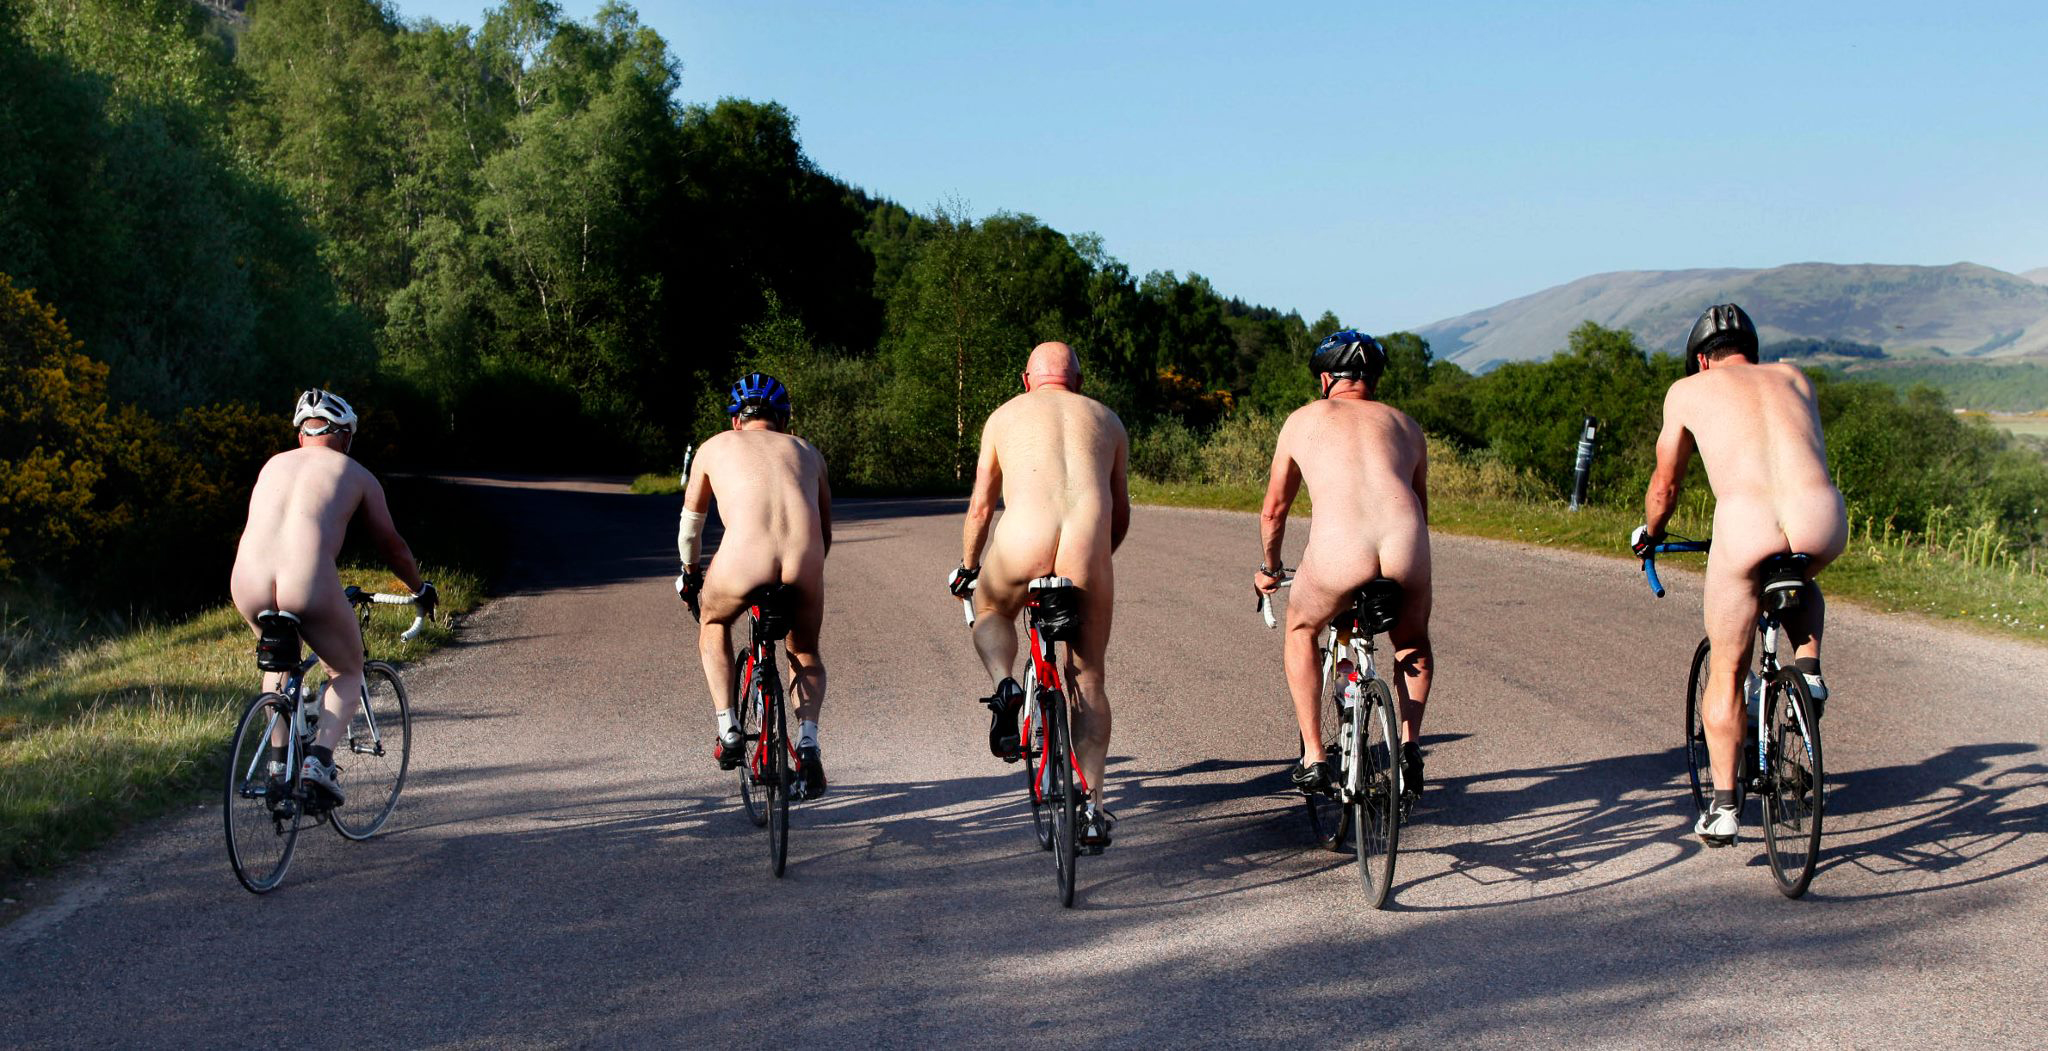 The wheresyourbike charity challenge – fat bottomed men with boobs on bicycles